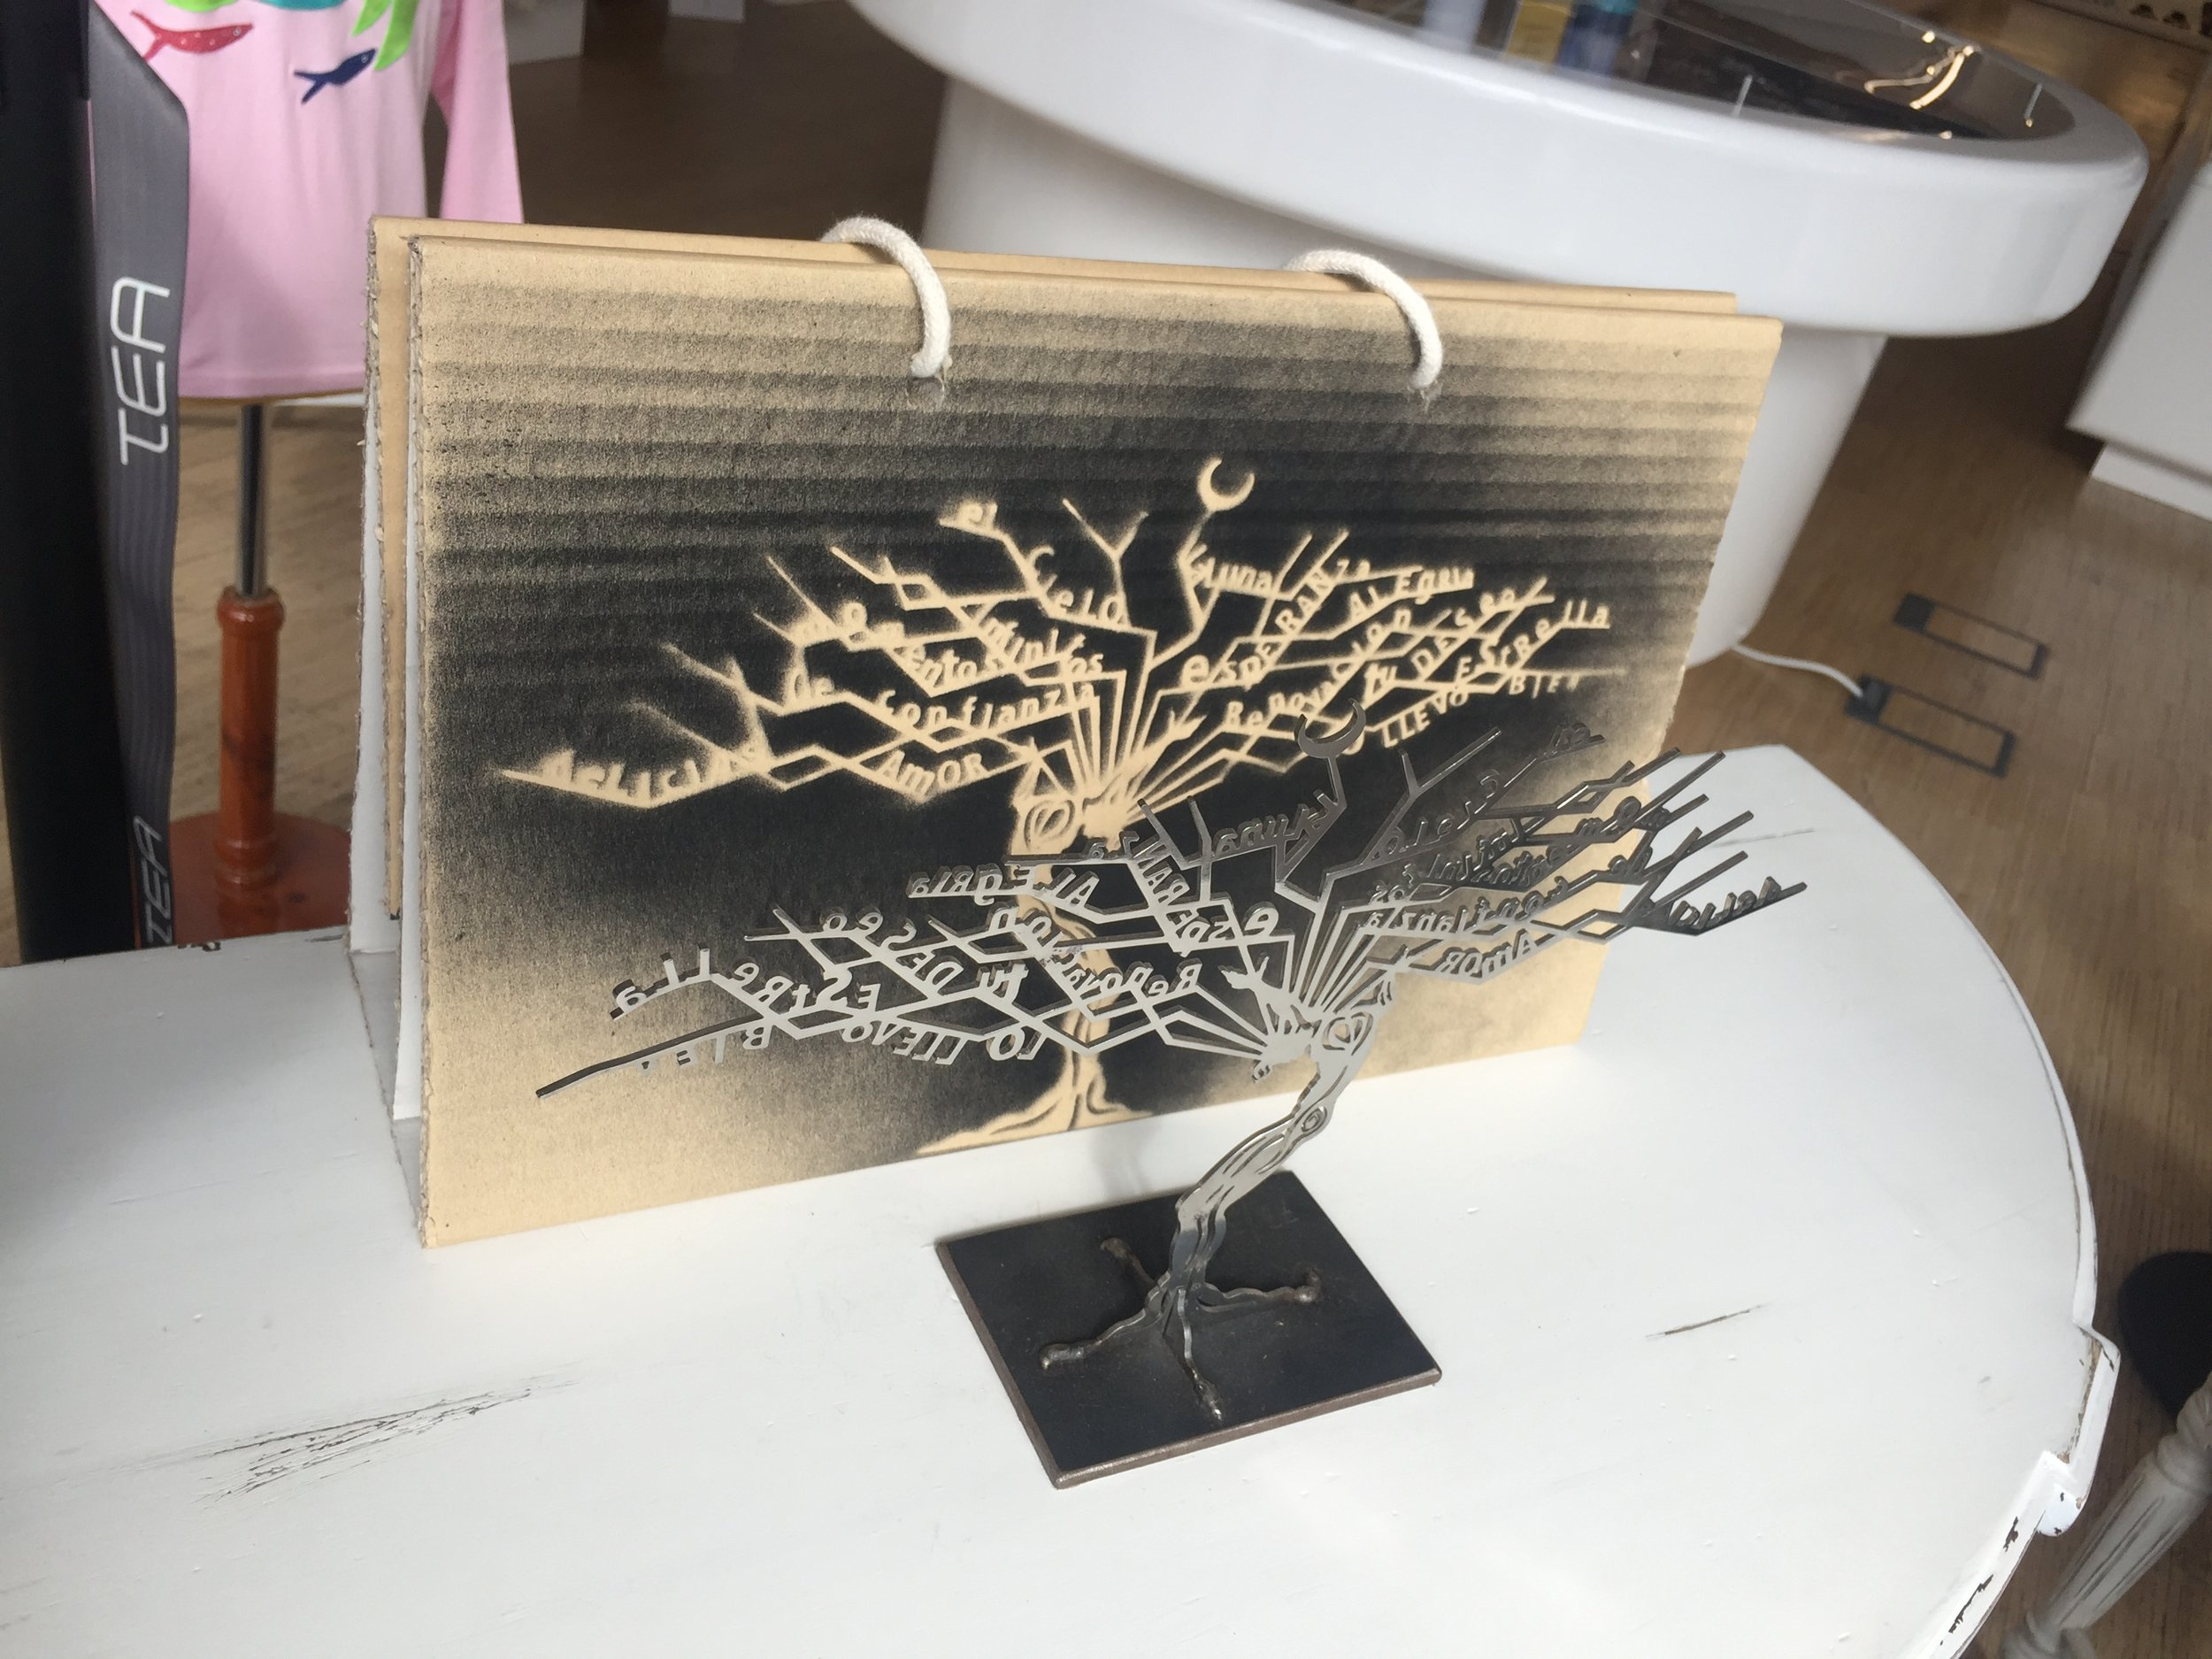 Julio Nieto tree of life sculpture comes in great packaging and can be inscribed. €190